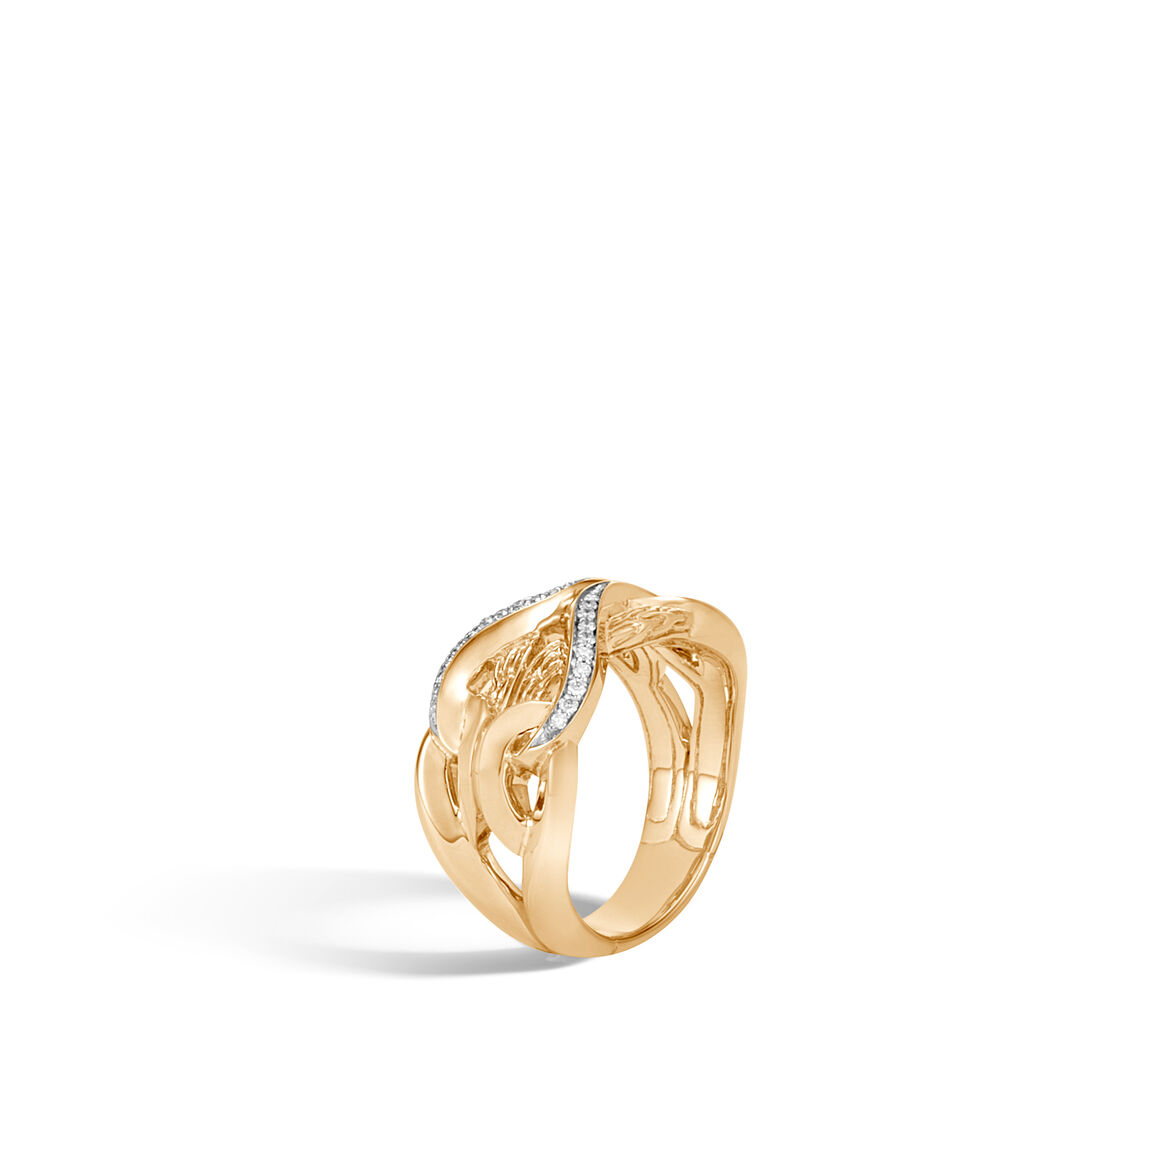 Asli Classic Chain Link 11.5MM Band Ring in 18K Gold with Dia